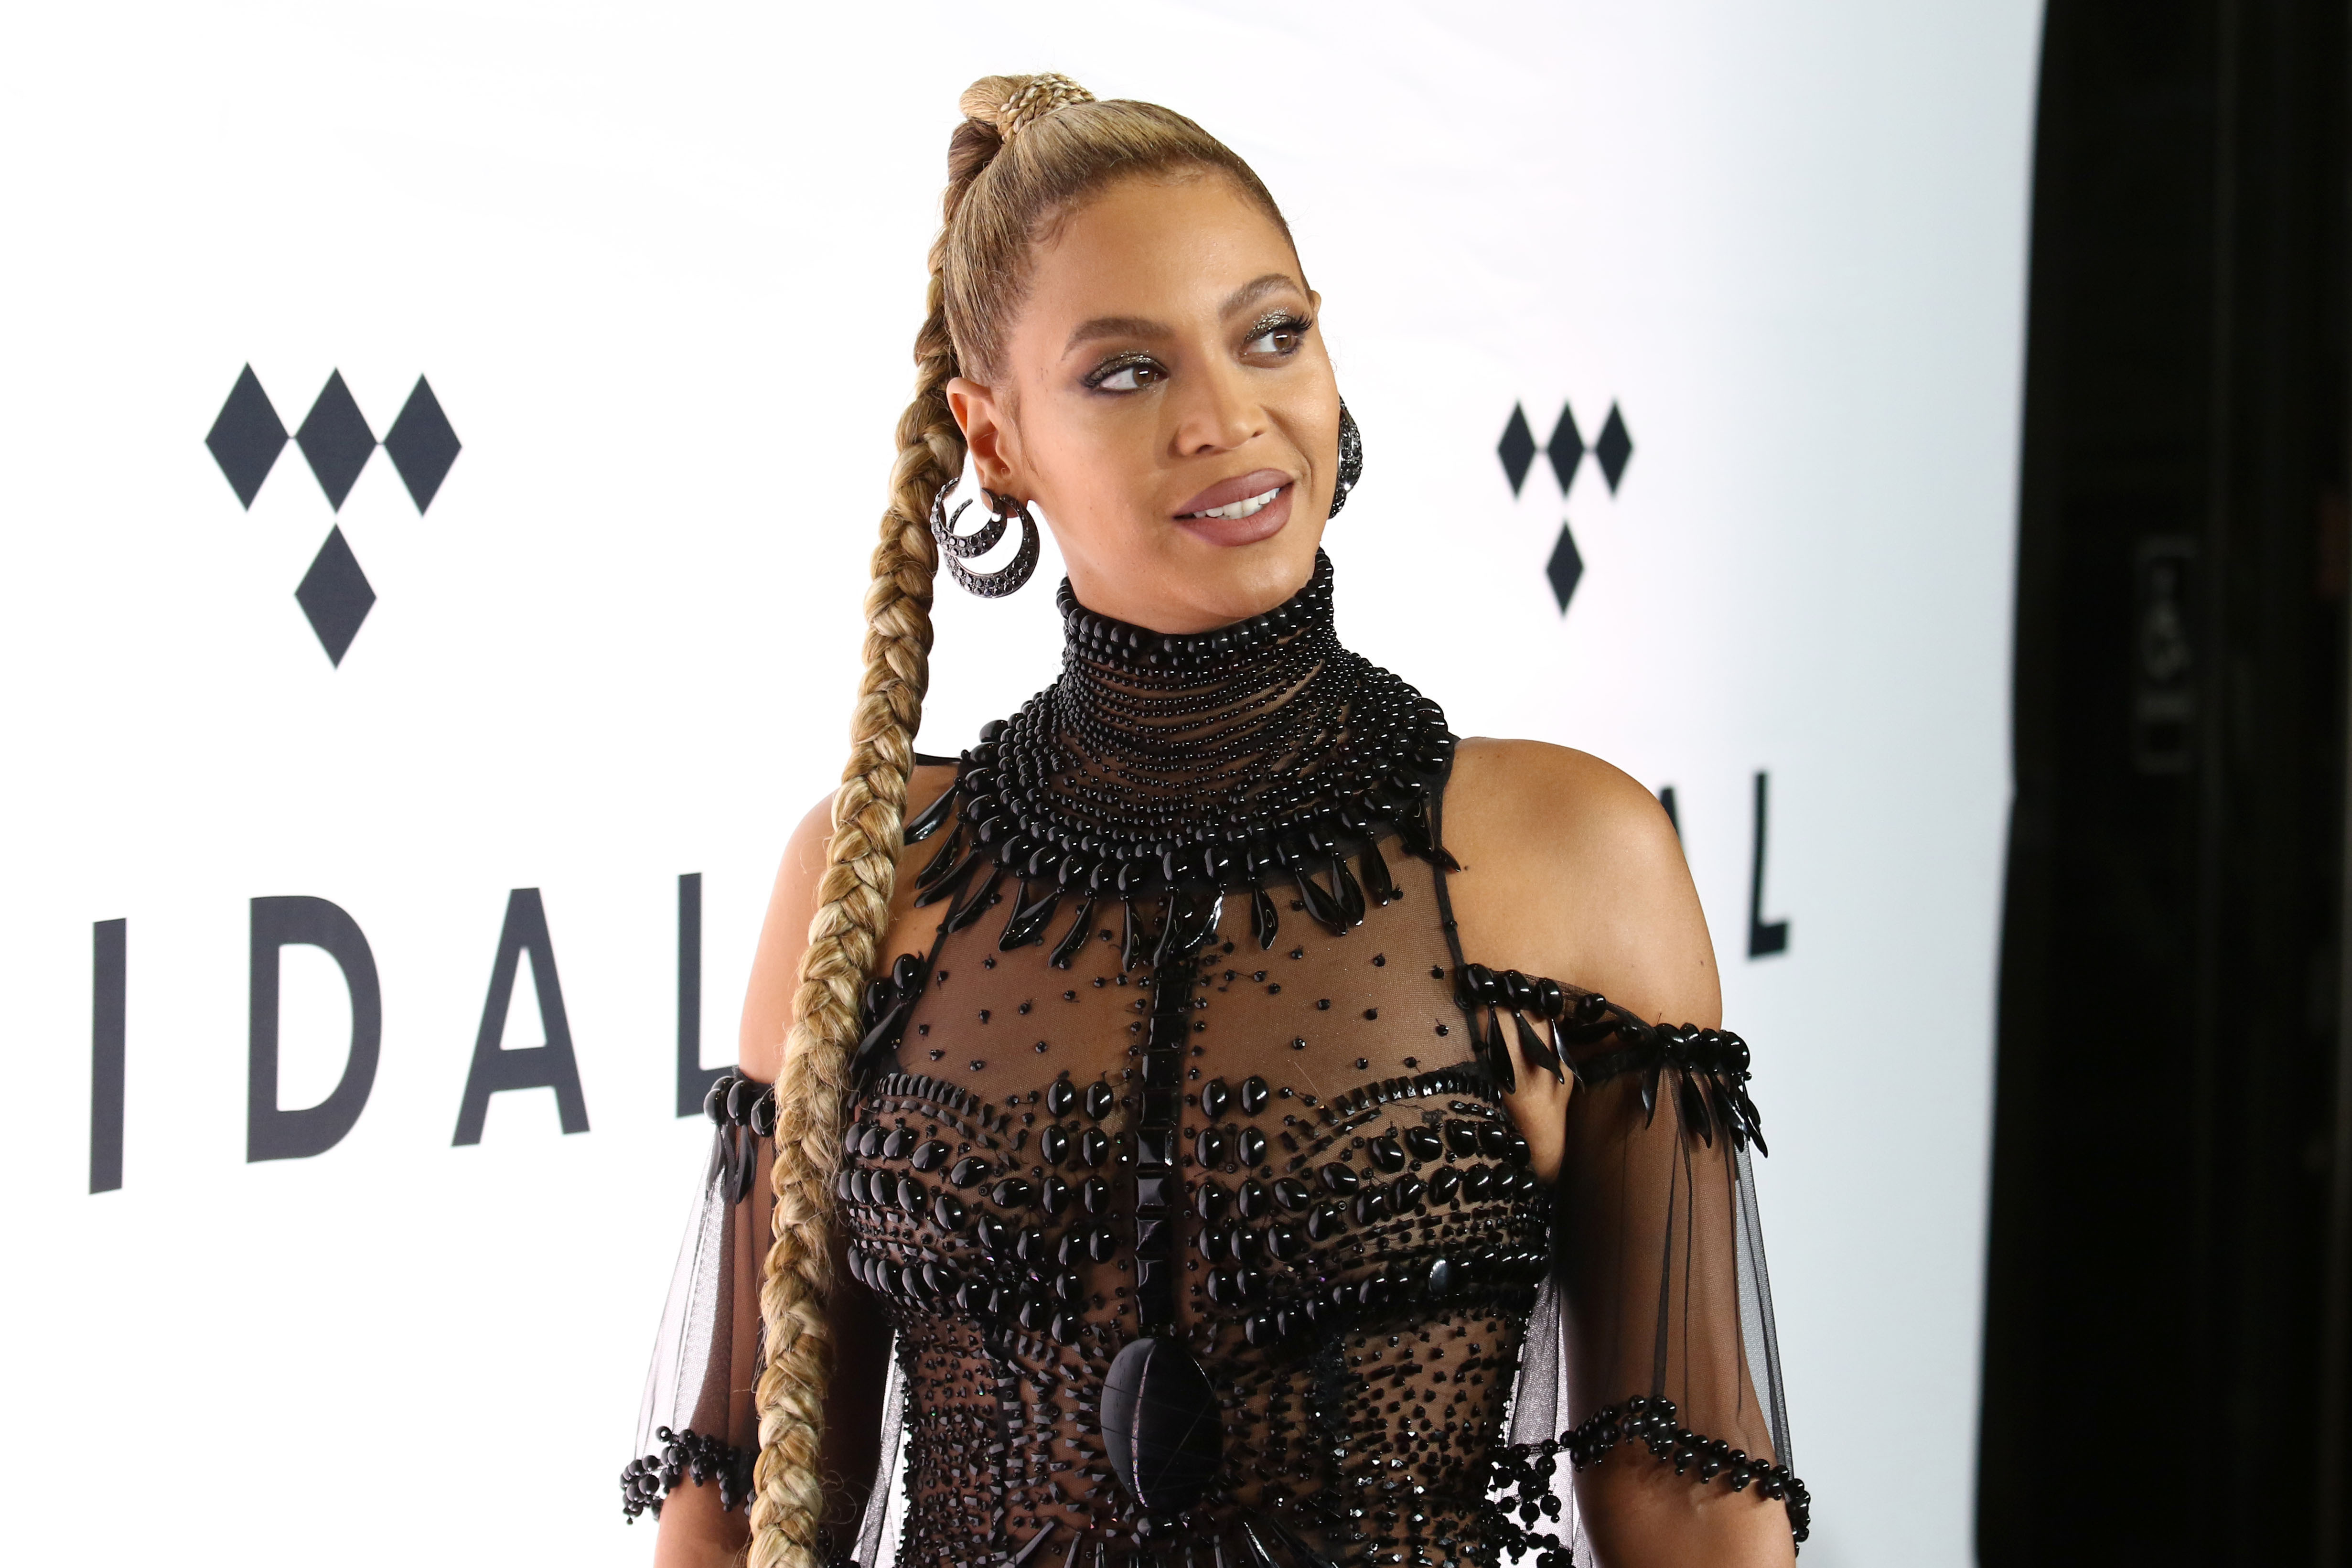 Beyonce Knowles attends the TIDAL X 1015 concert at the Barclays Center on October 15, 2016, in New York - Photo by JStone via Shutterstock - Women Empowerment Songs - women empowering women - modern feminists - 21st century feminists